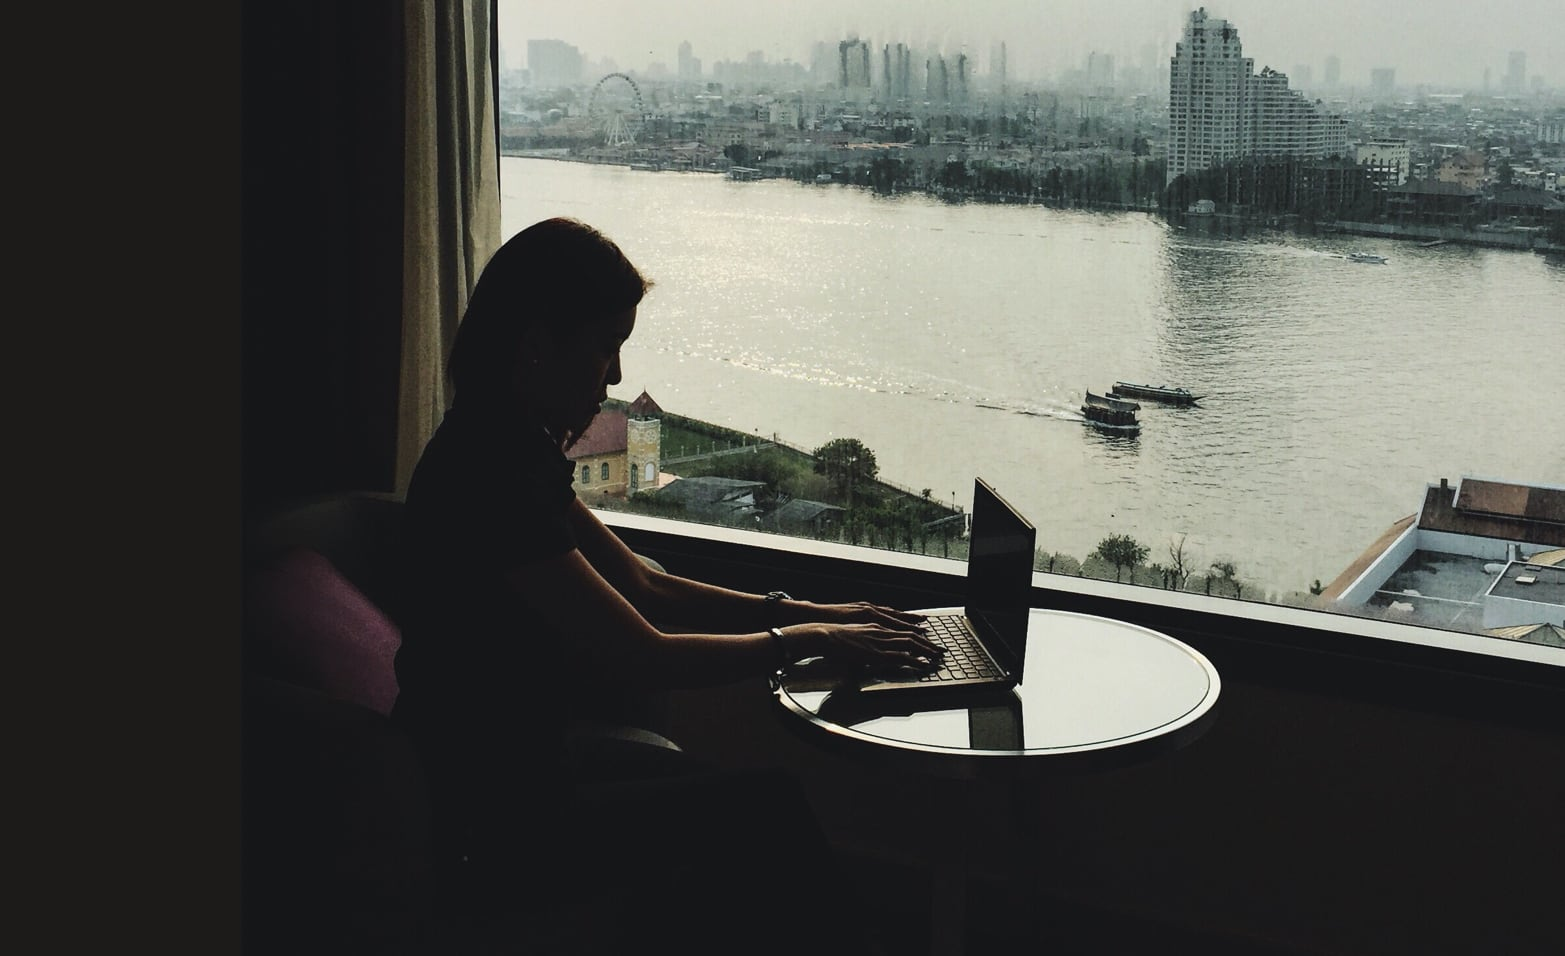 Working in a hotel room overlooking the river